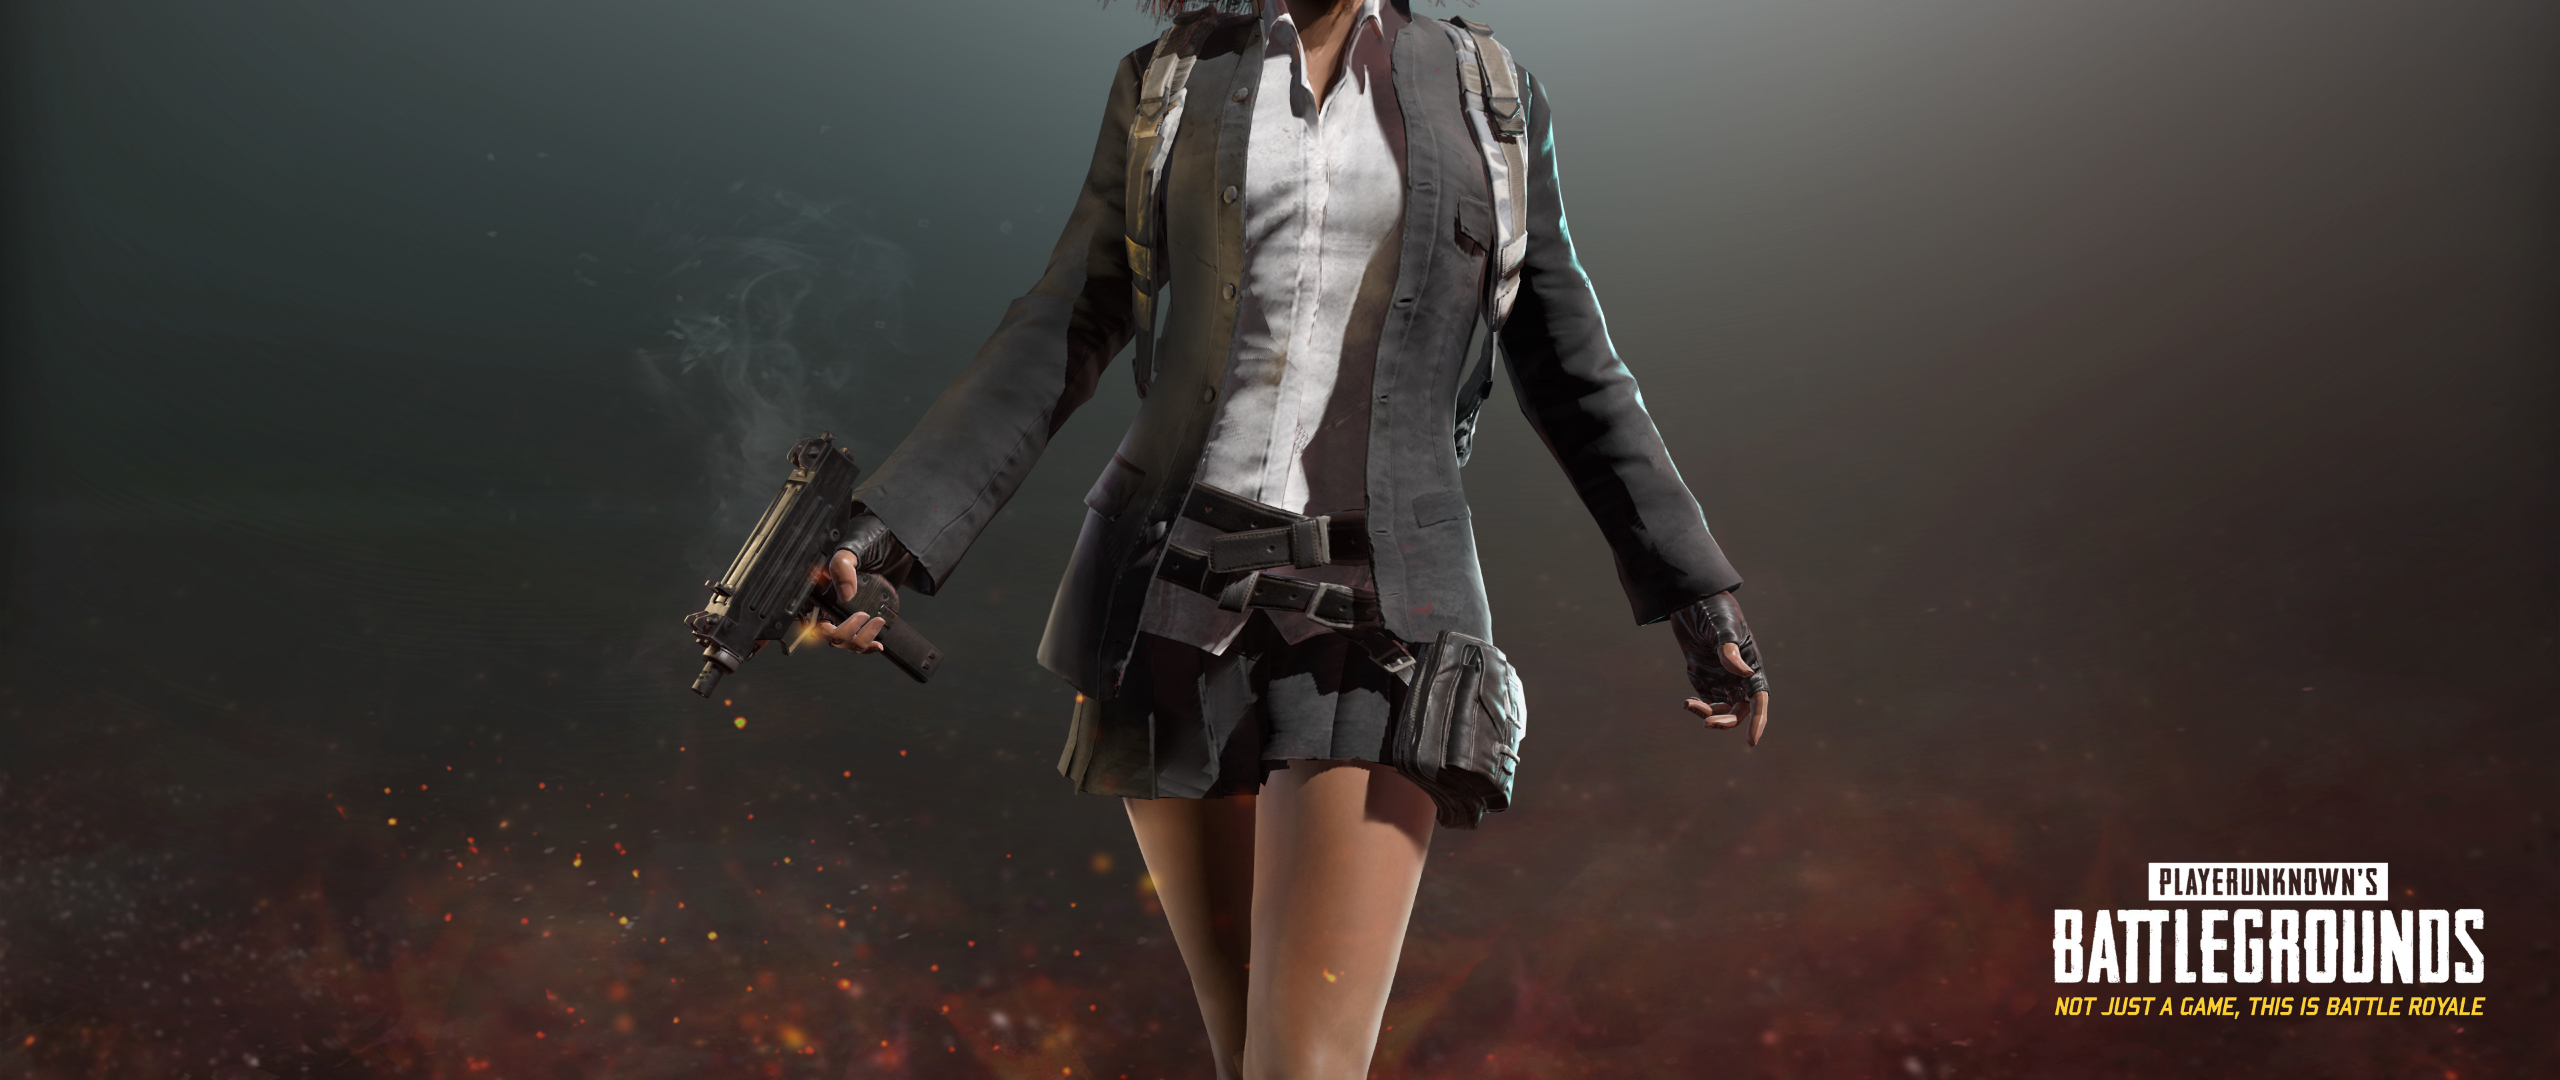 2560x1080 2018 Playerunknowns Battlegrounds 2560x1080: Playerunknowns Battlegrounds Game Character, HD 4K Wallpaper